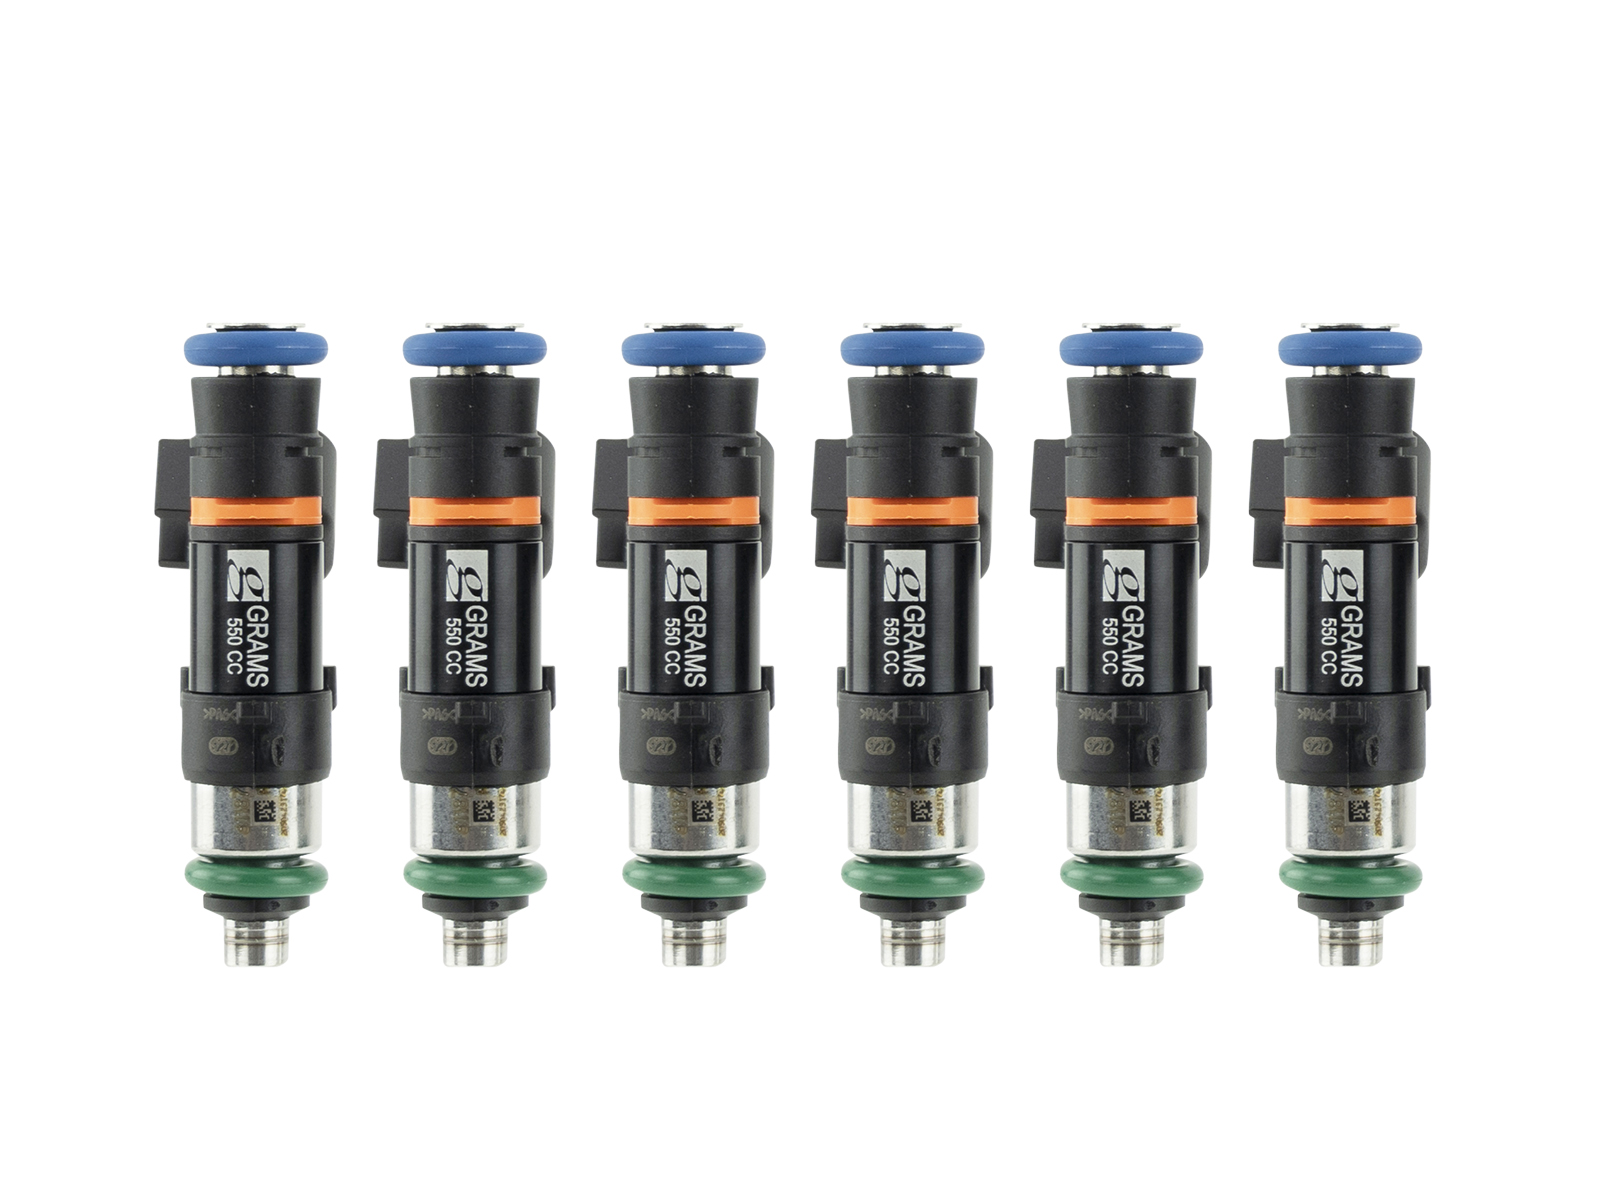 Grams Performance Nissan Skyline GT-R R32, R33, R34 RB26 Top Feed Only 14mm 550cc 52 lbs/hr Injector Kit G2-0550-0705